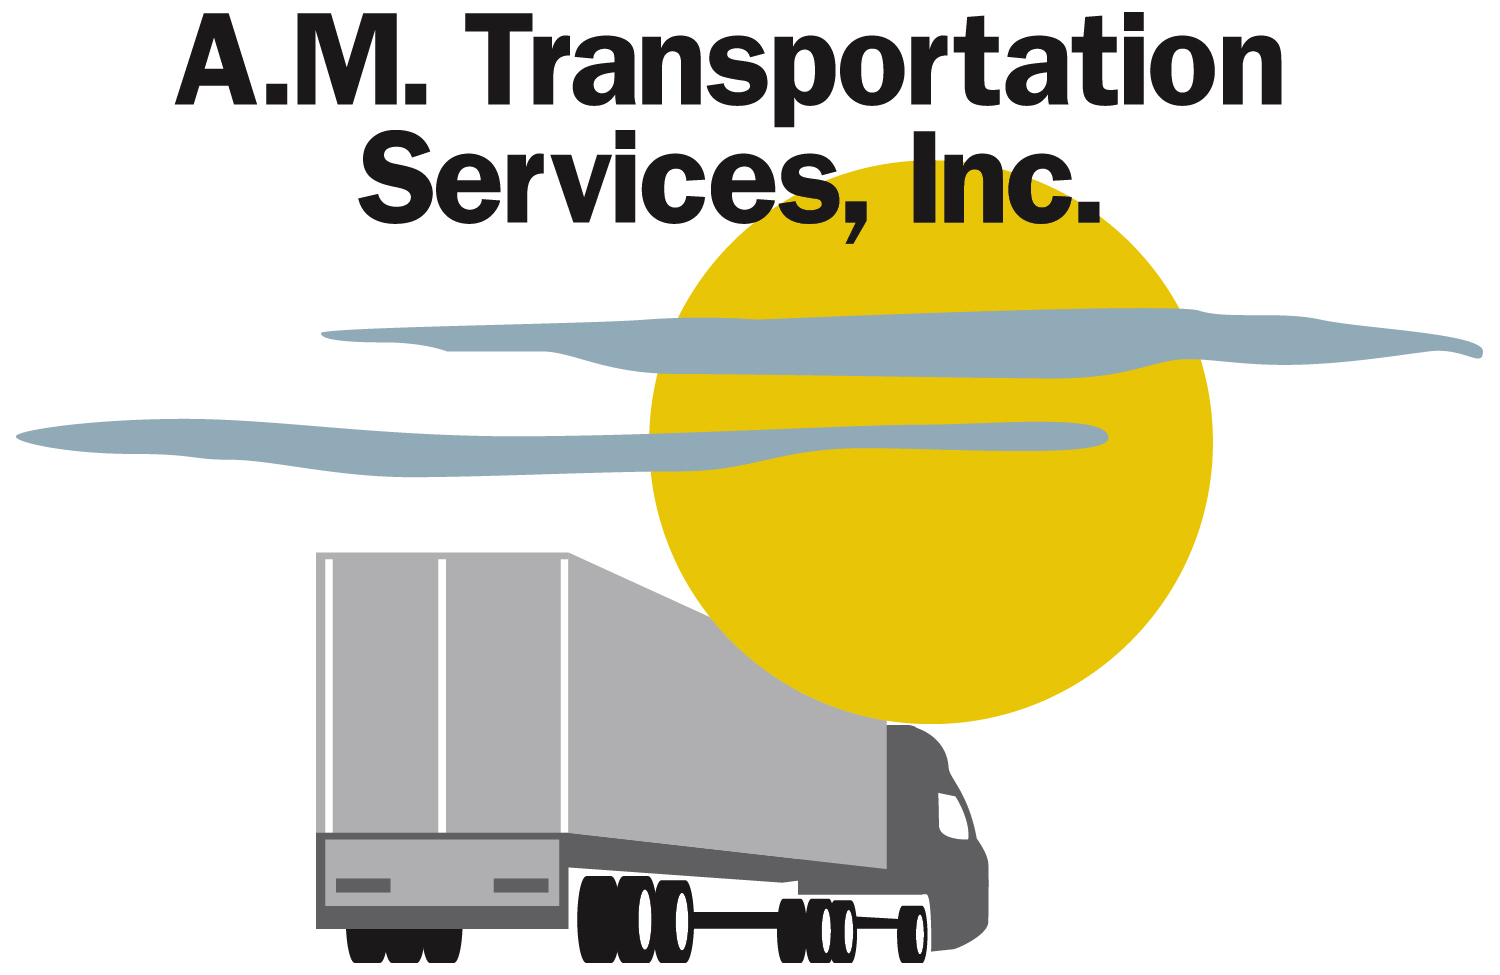 A.M. Transportation Services, Inc